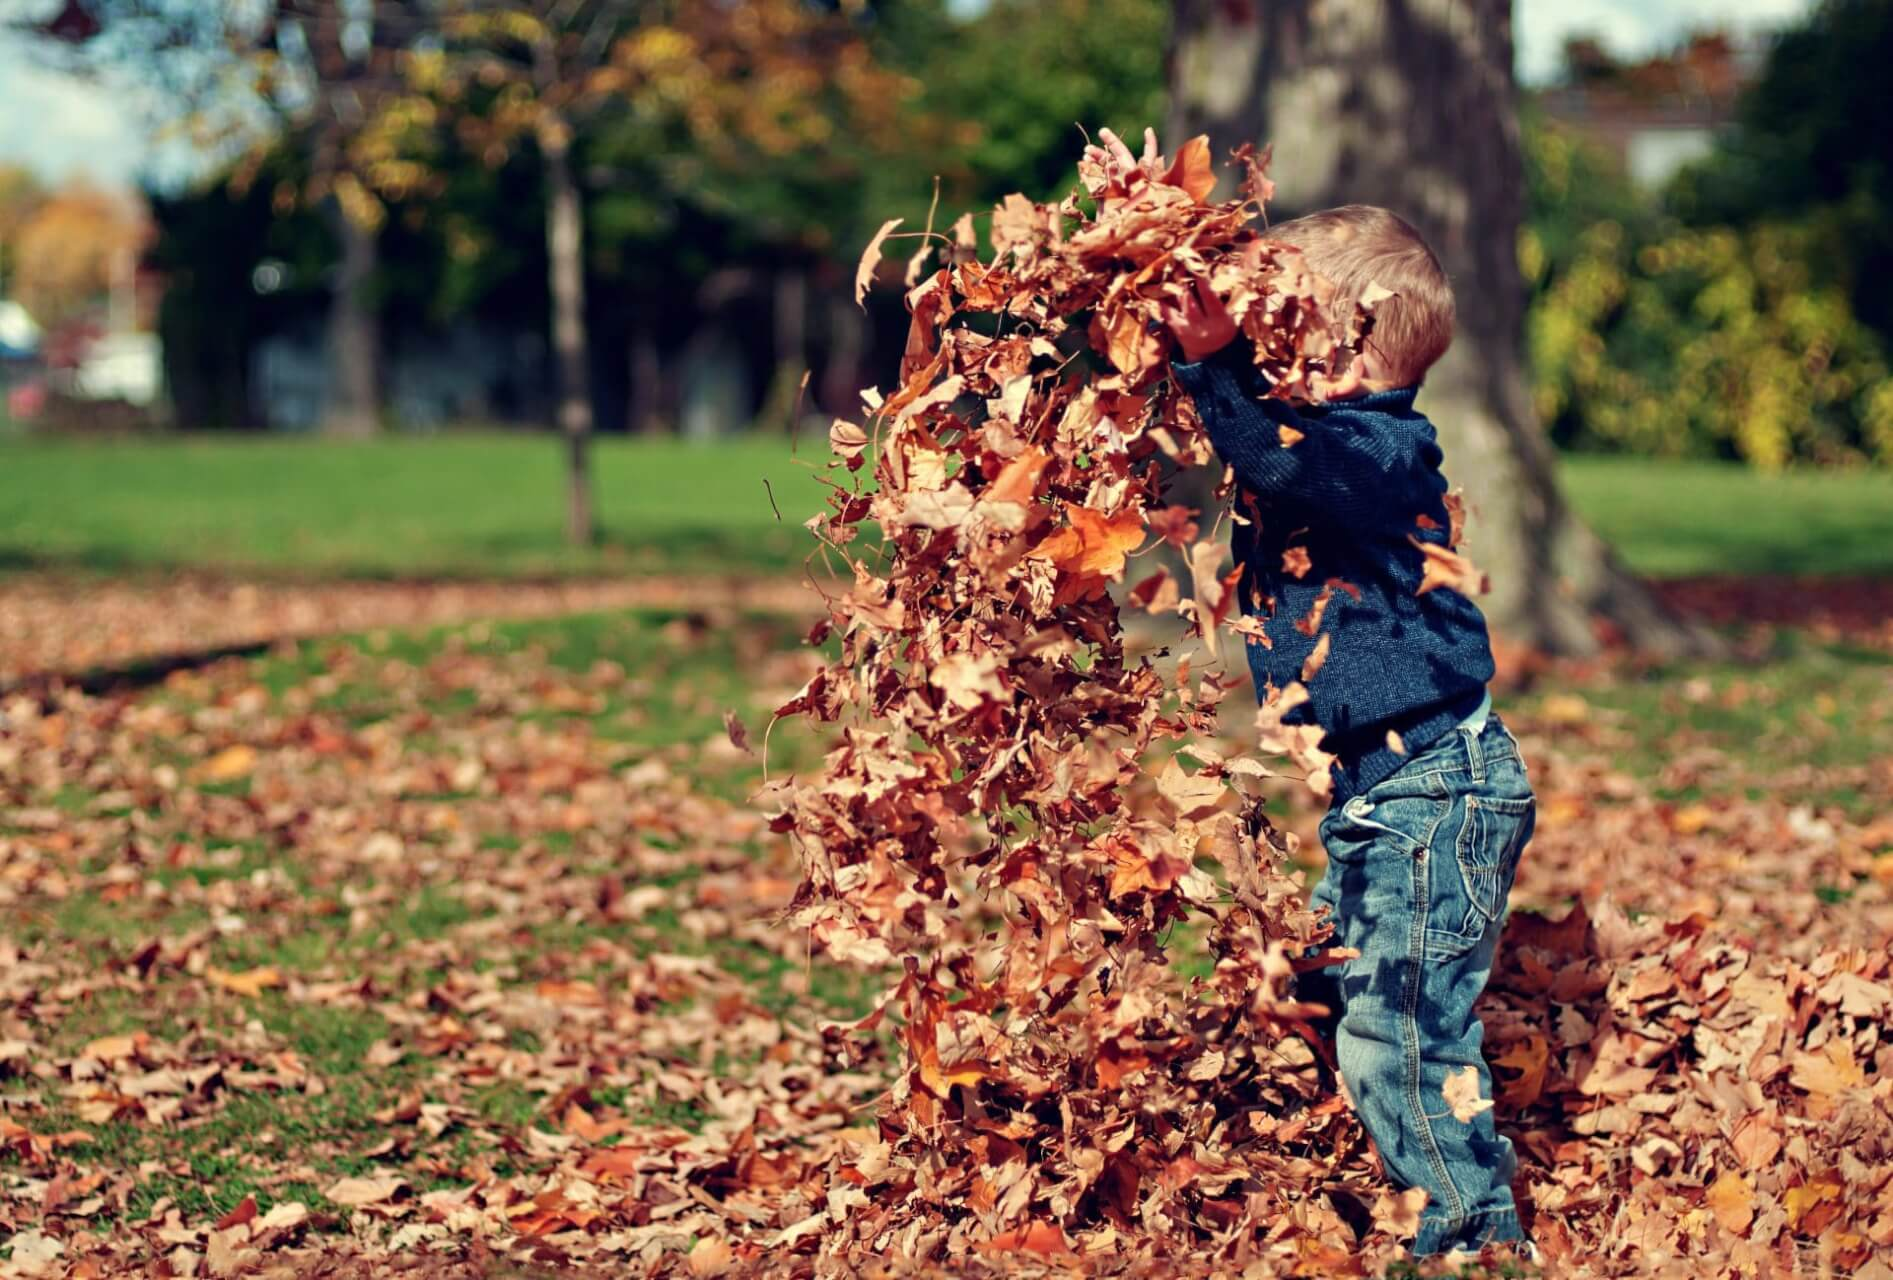 Jumping in Leaves & Other Fun Stuff